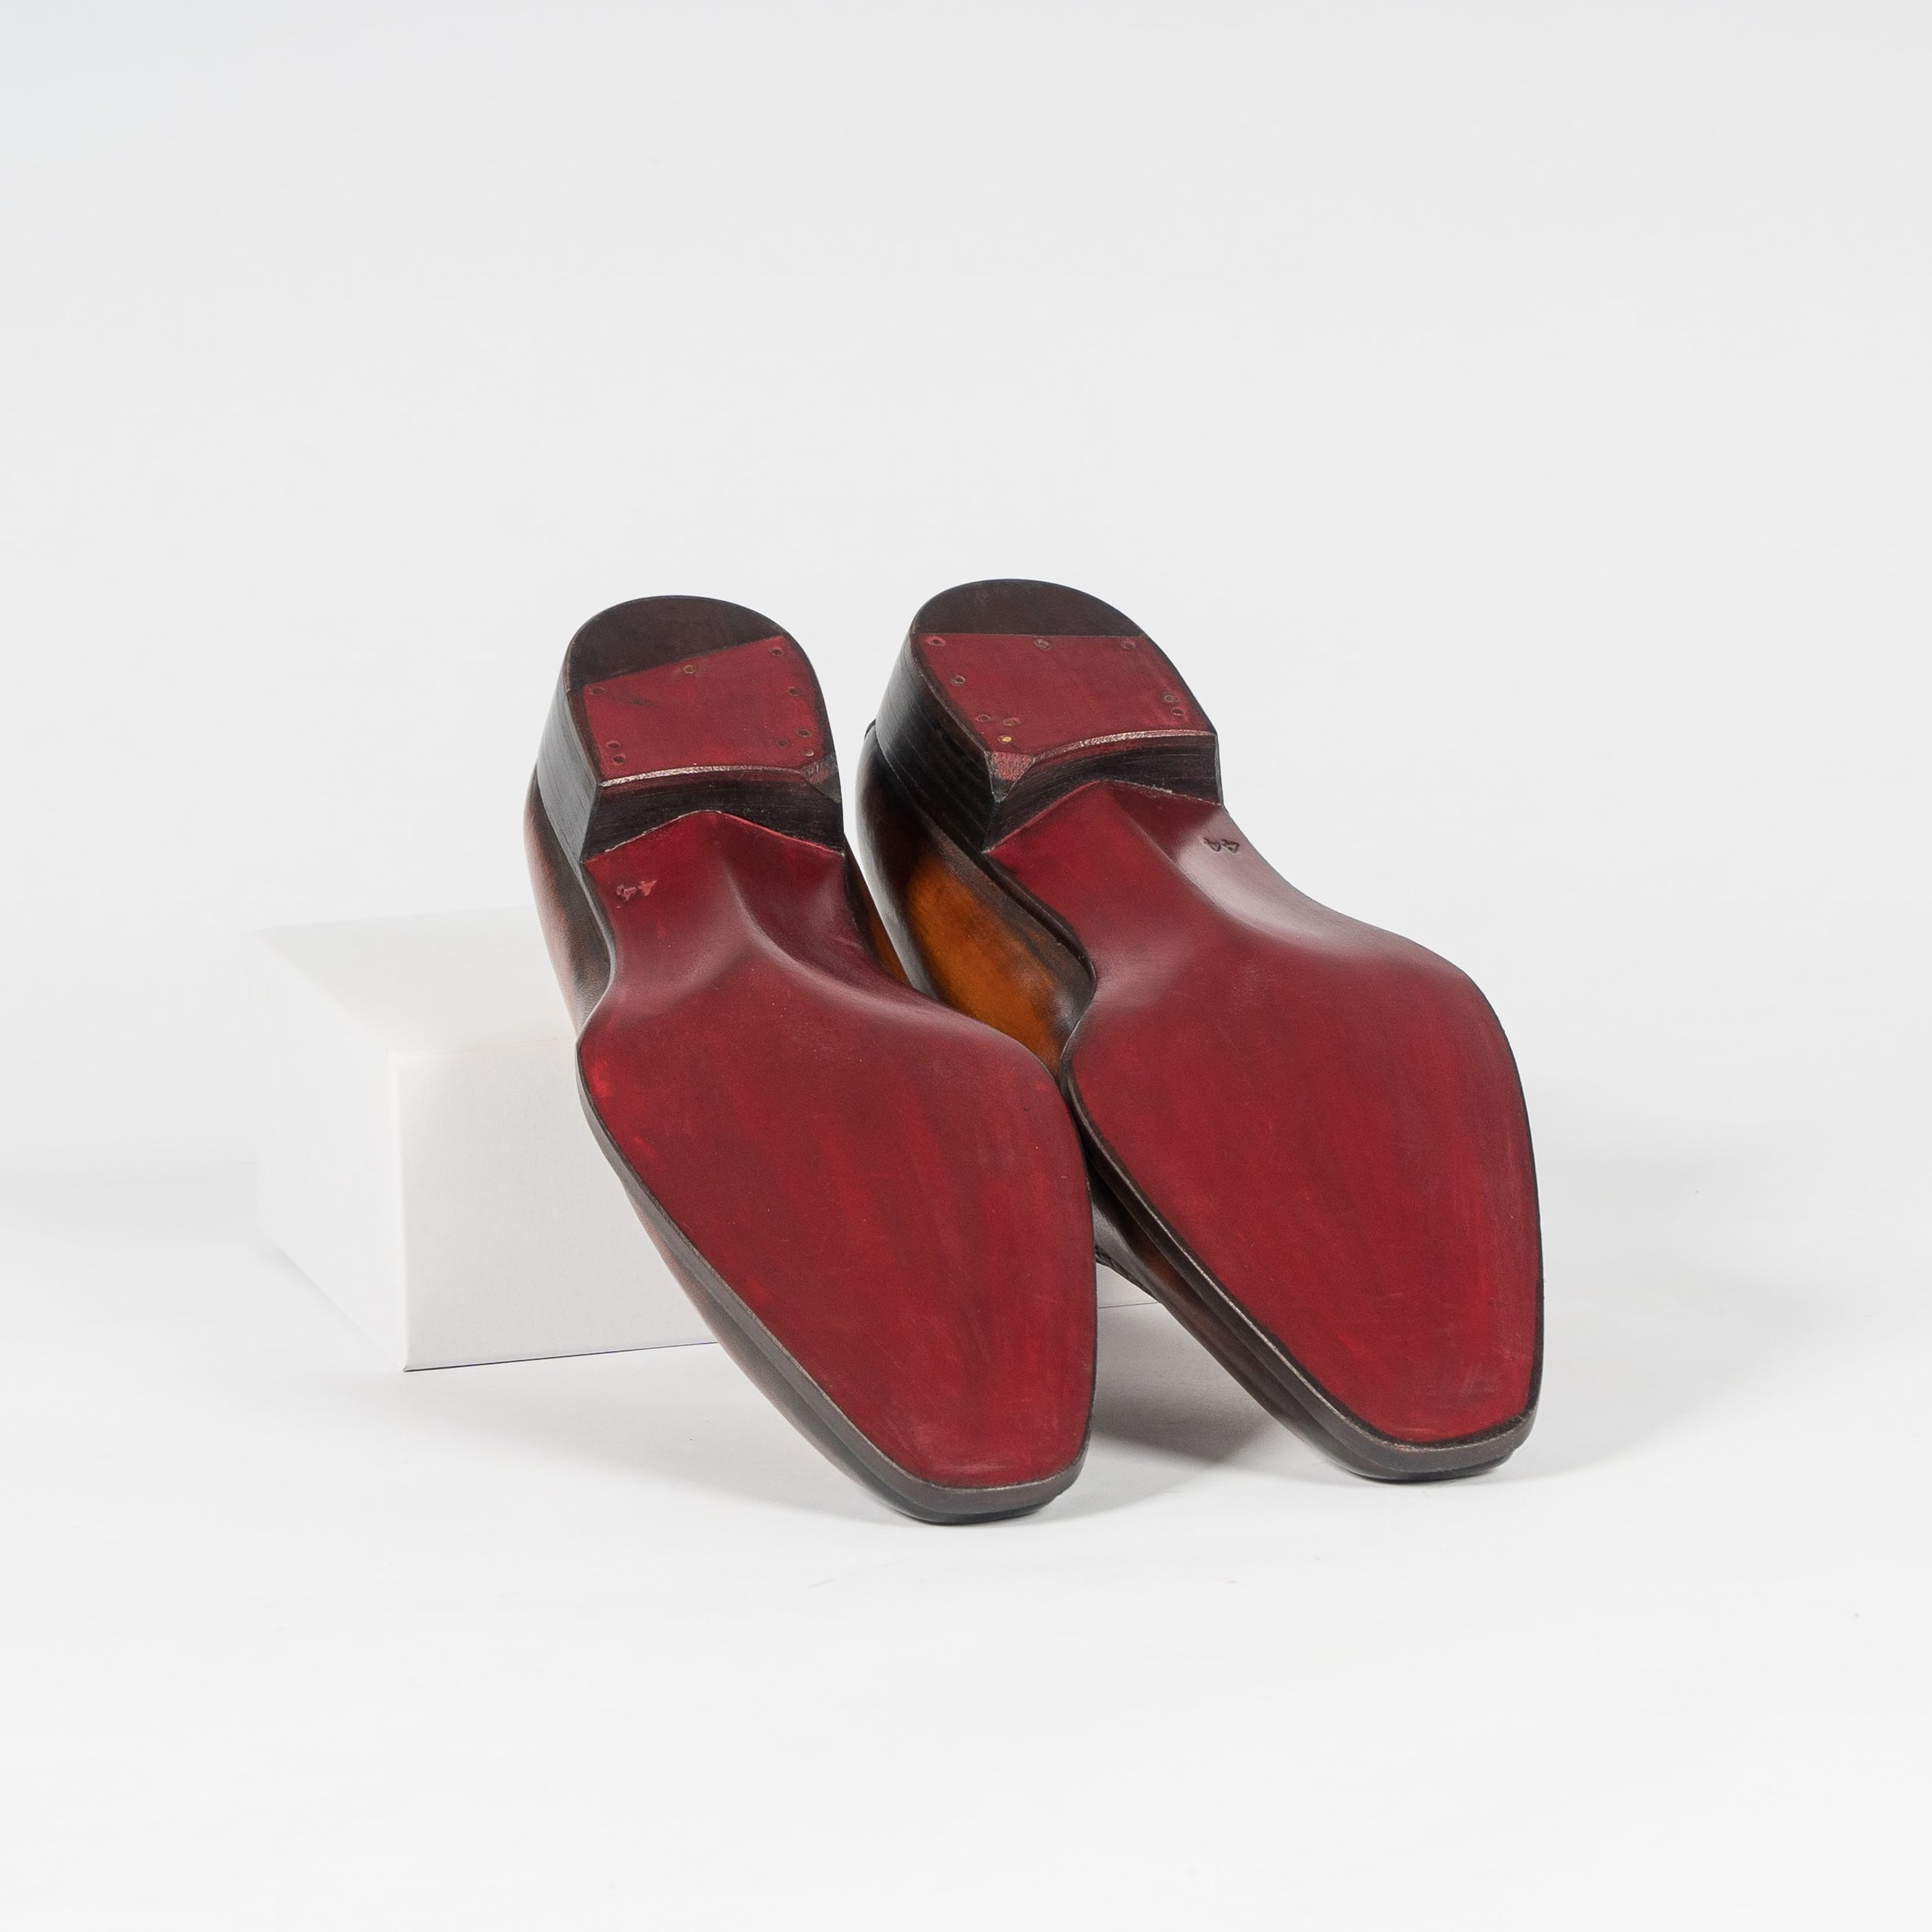 UNO close channel bevel waist outsole in a hand painted dark maroon color.